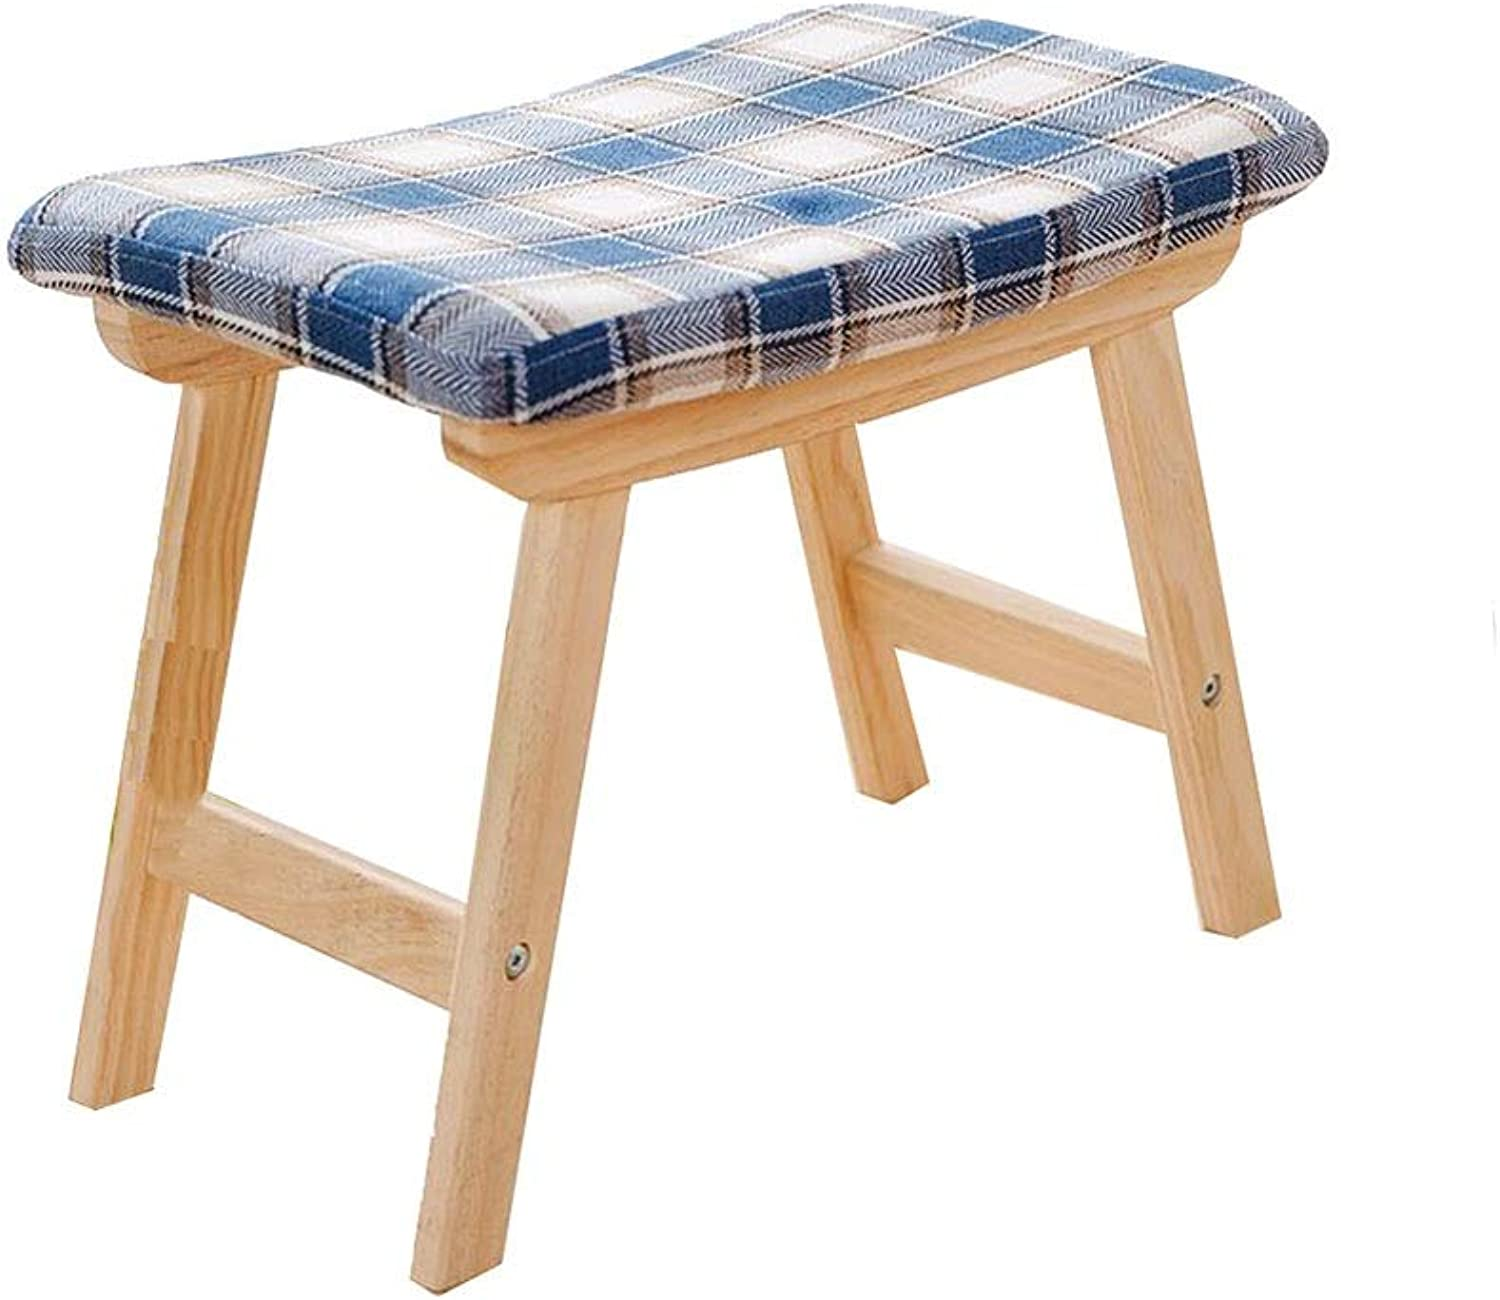 YCSD Modern Small Bench Stool Concave Seat Surface Makeup Dressing Stool Padded Bench with Rubberwood Legs (color   Plaid color, Size   48 x30x40cm)